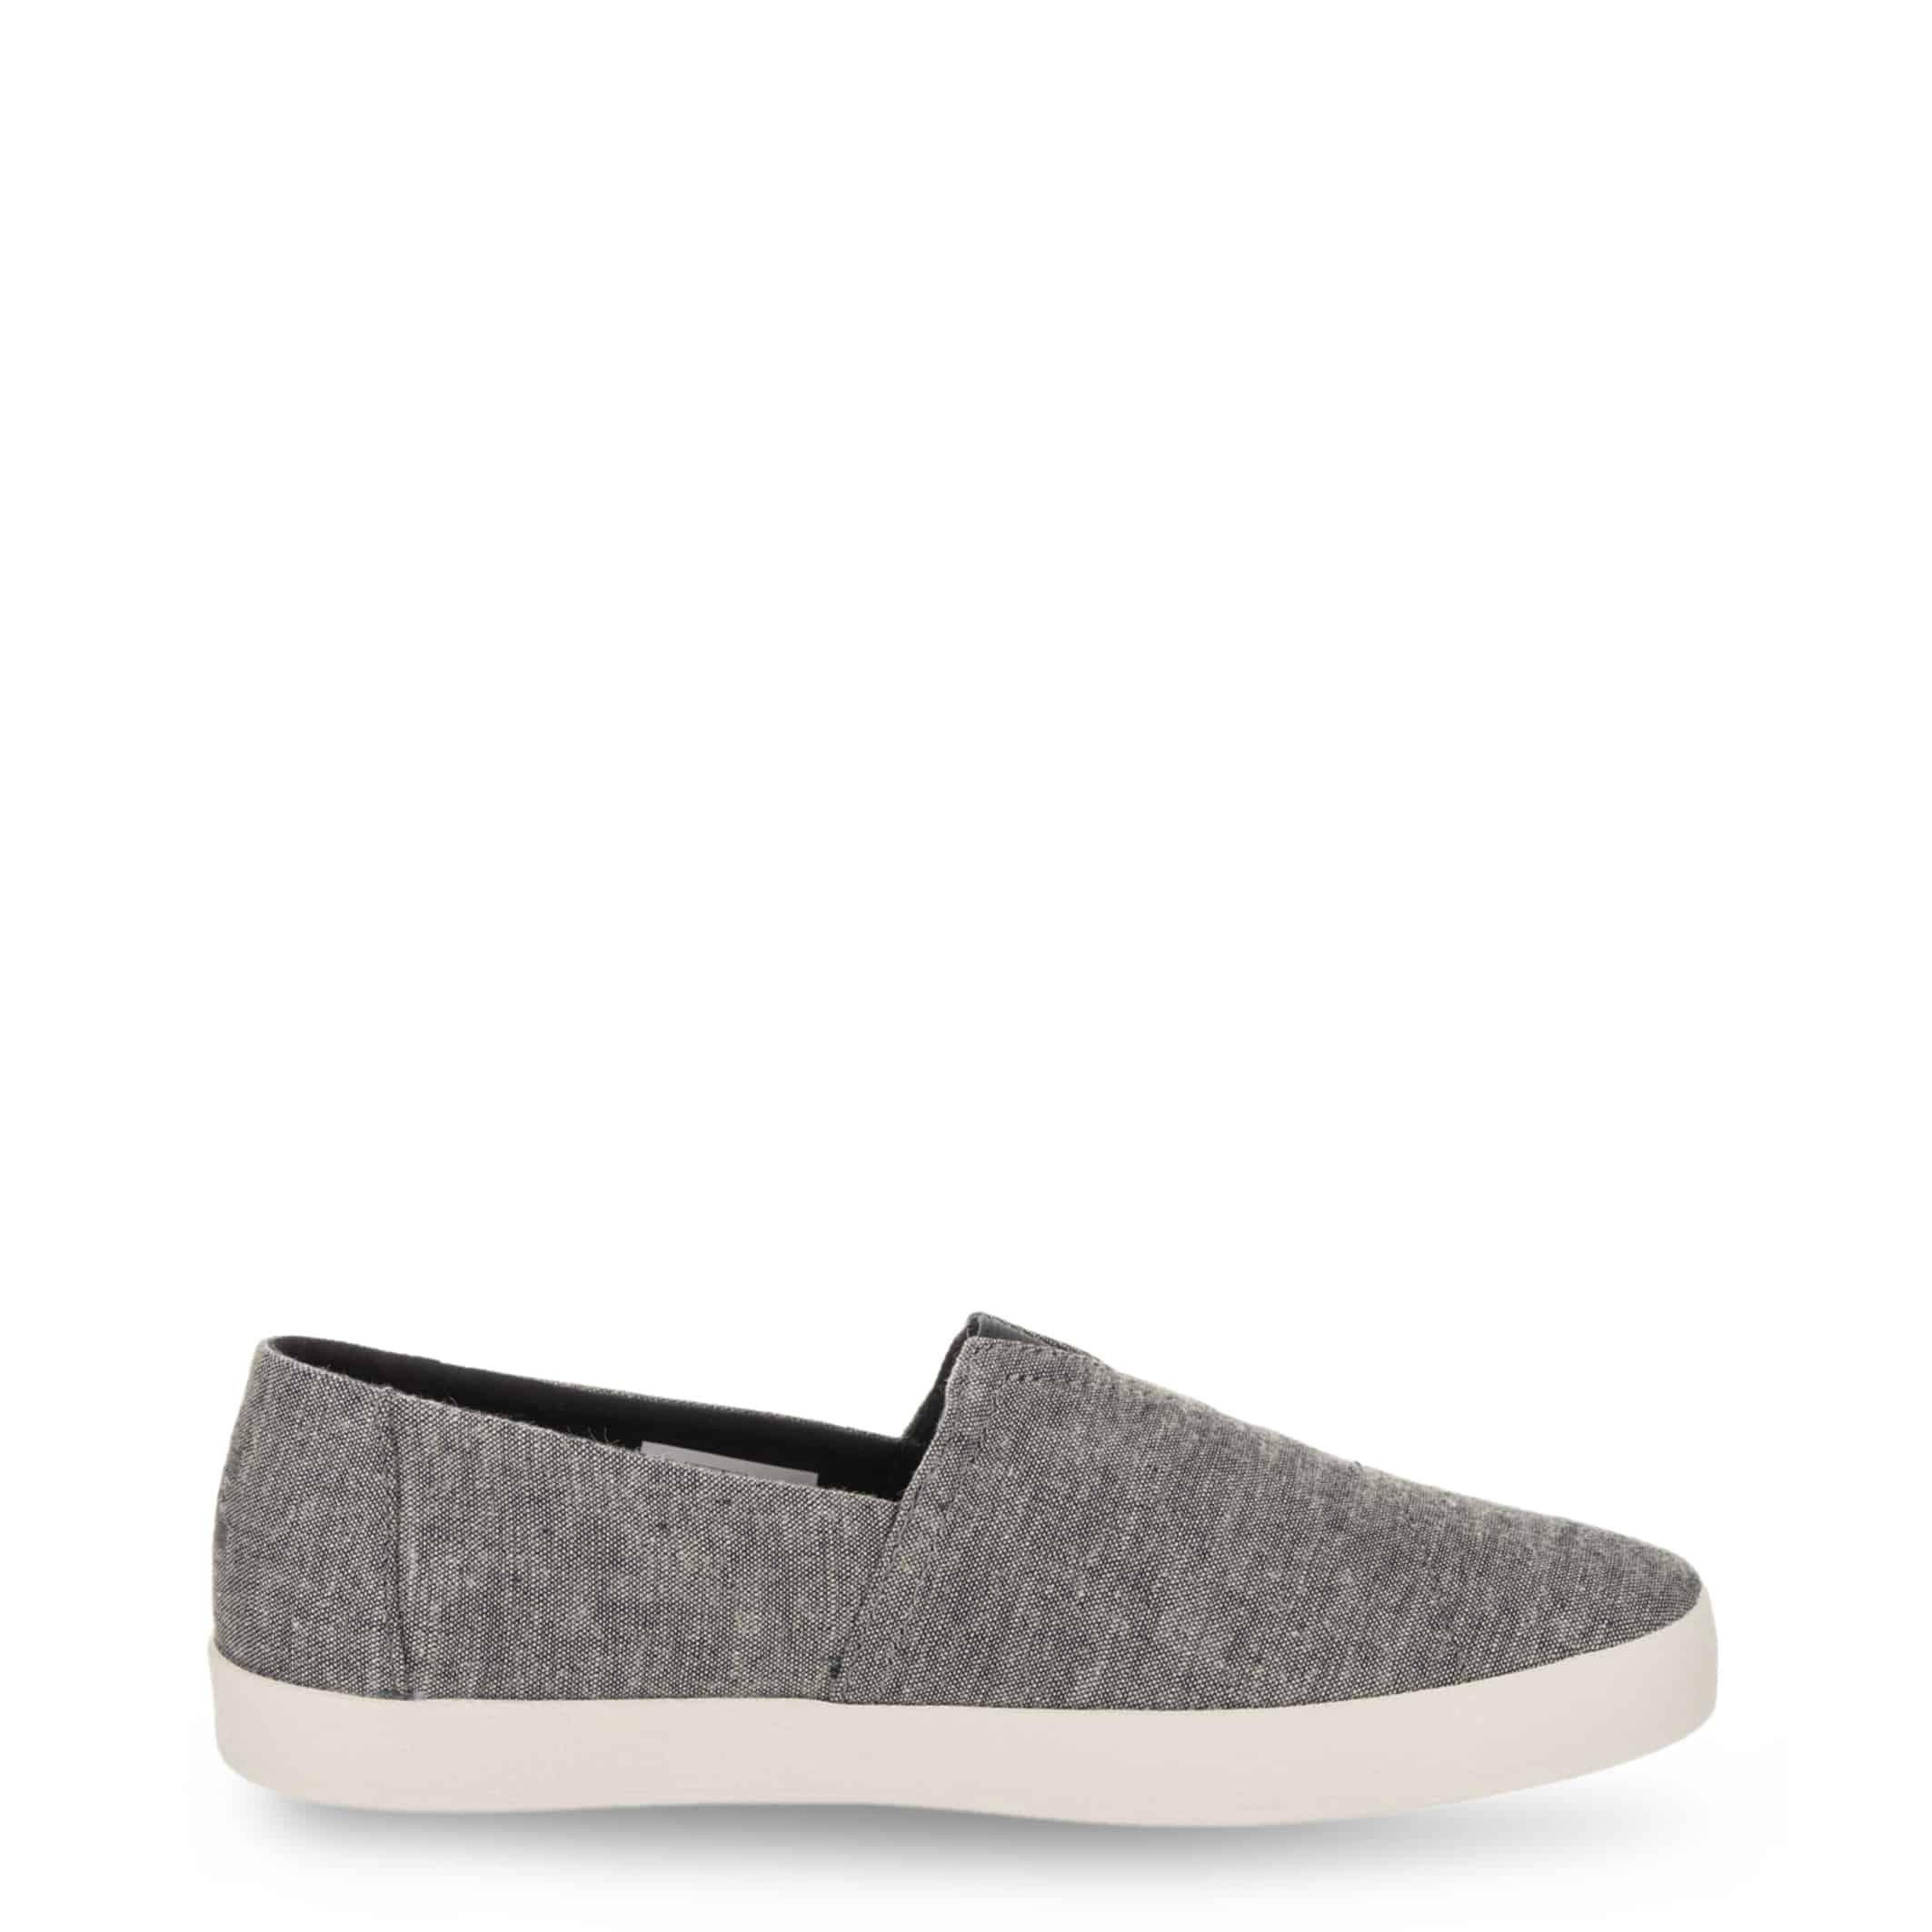 TOMS – CHAMBRAY-BF_10011000 – Grigio